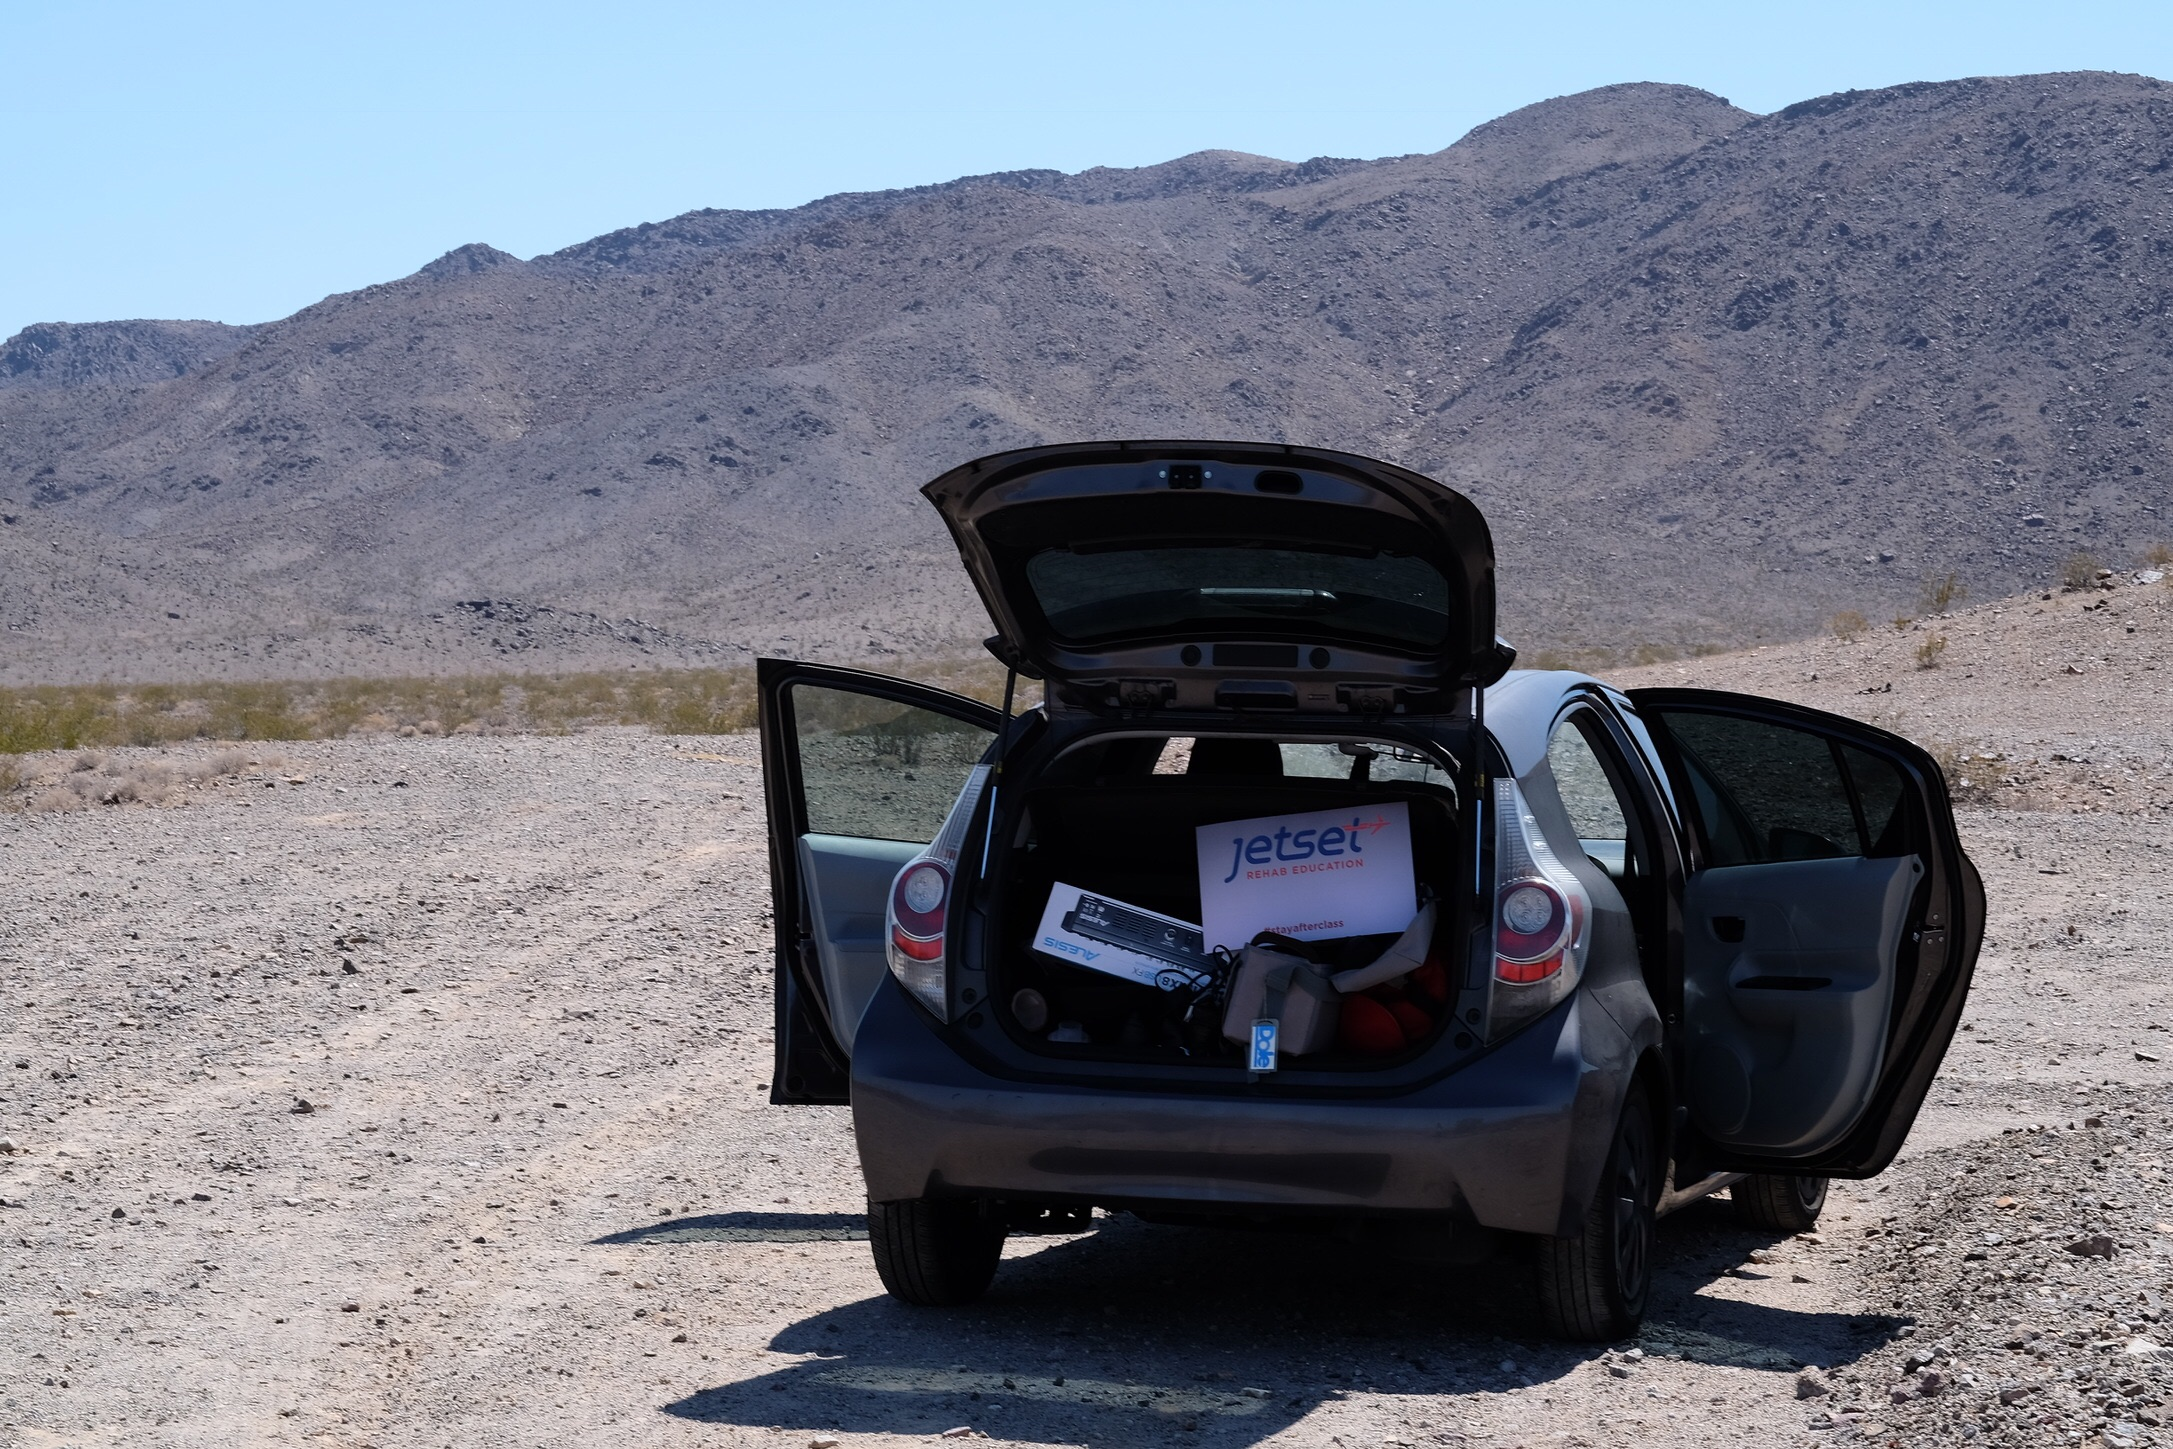 Pulling over to snap some photos on the way to Vegas. Location:  Zzyzx Rd. In the Mojave Desert .